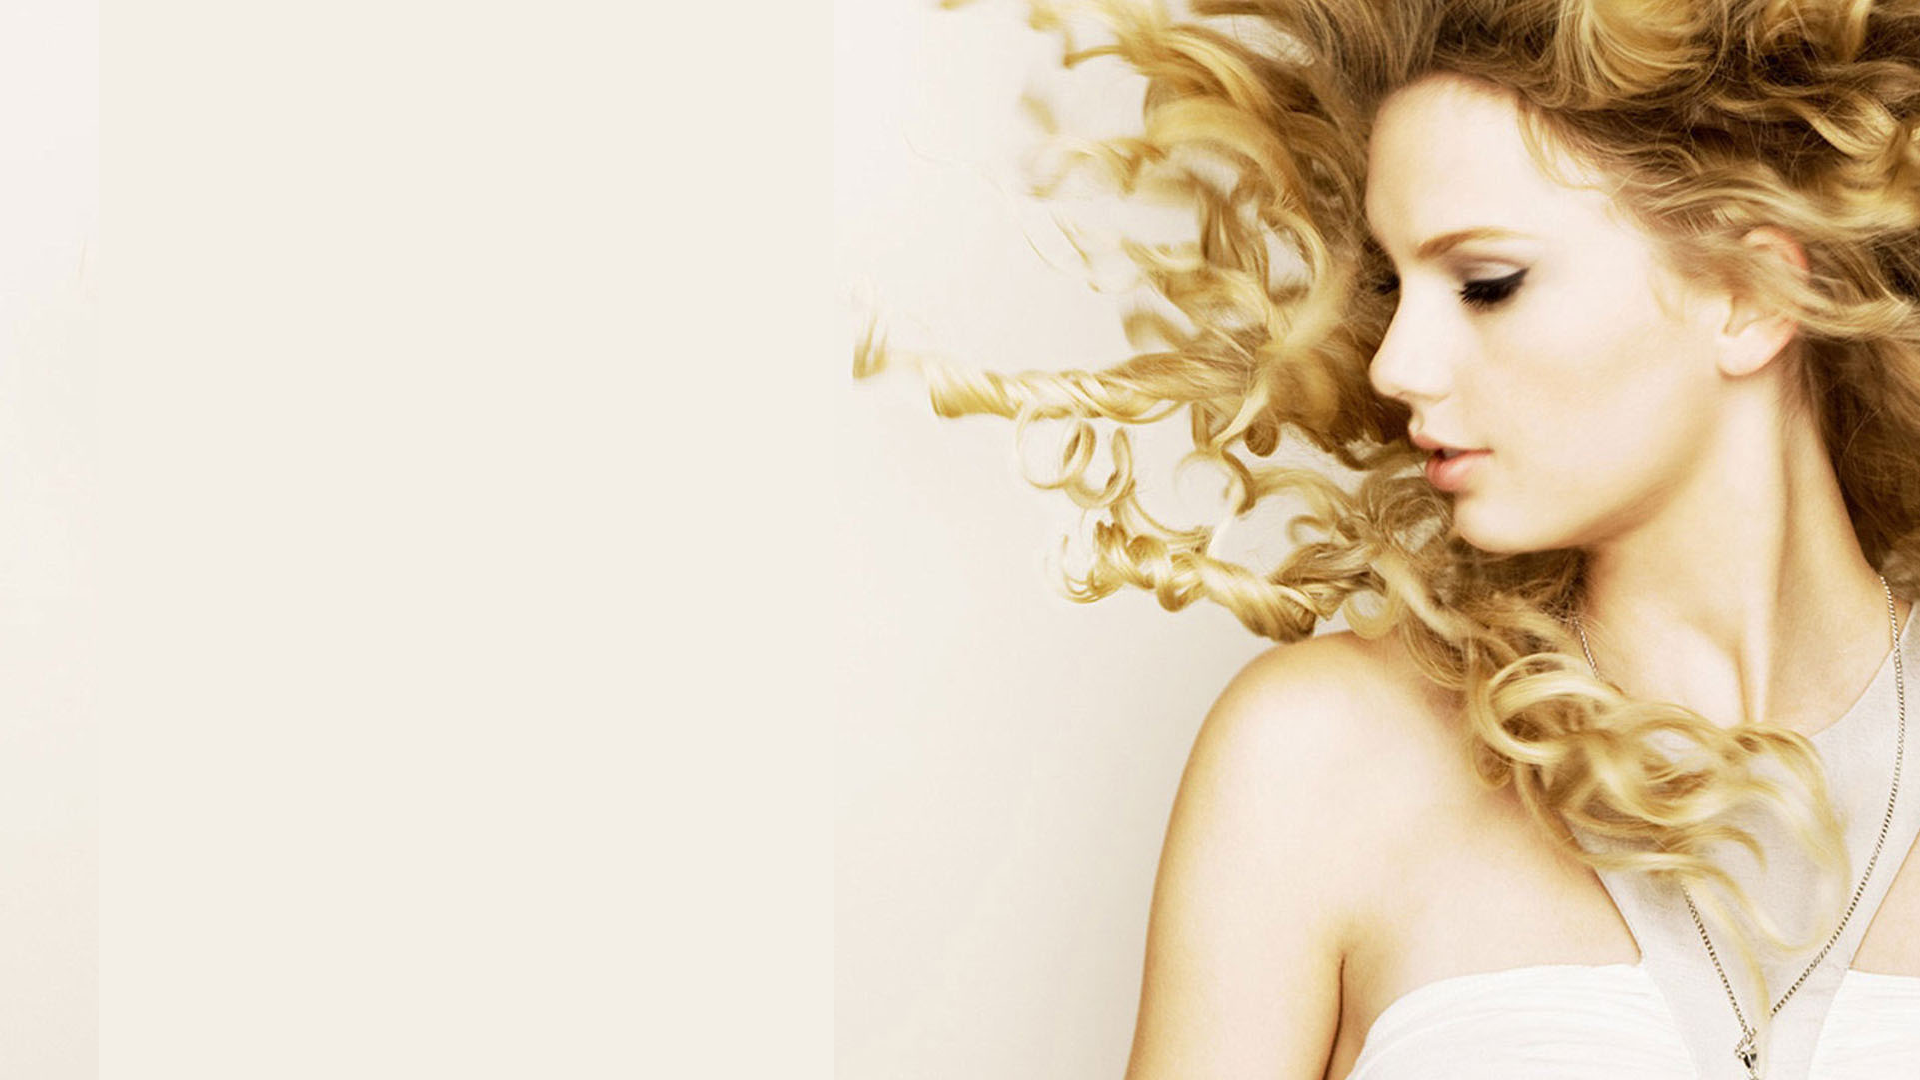 Taylor Swift Full HD Wallpaper and Background | 1920x1080 ...